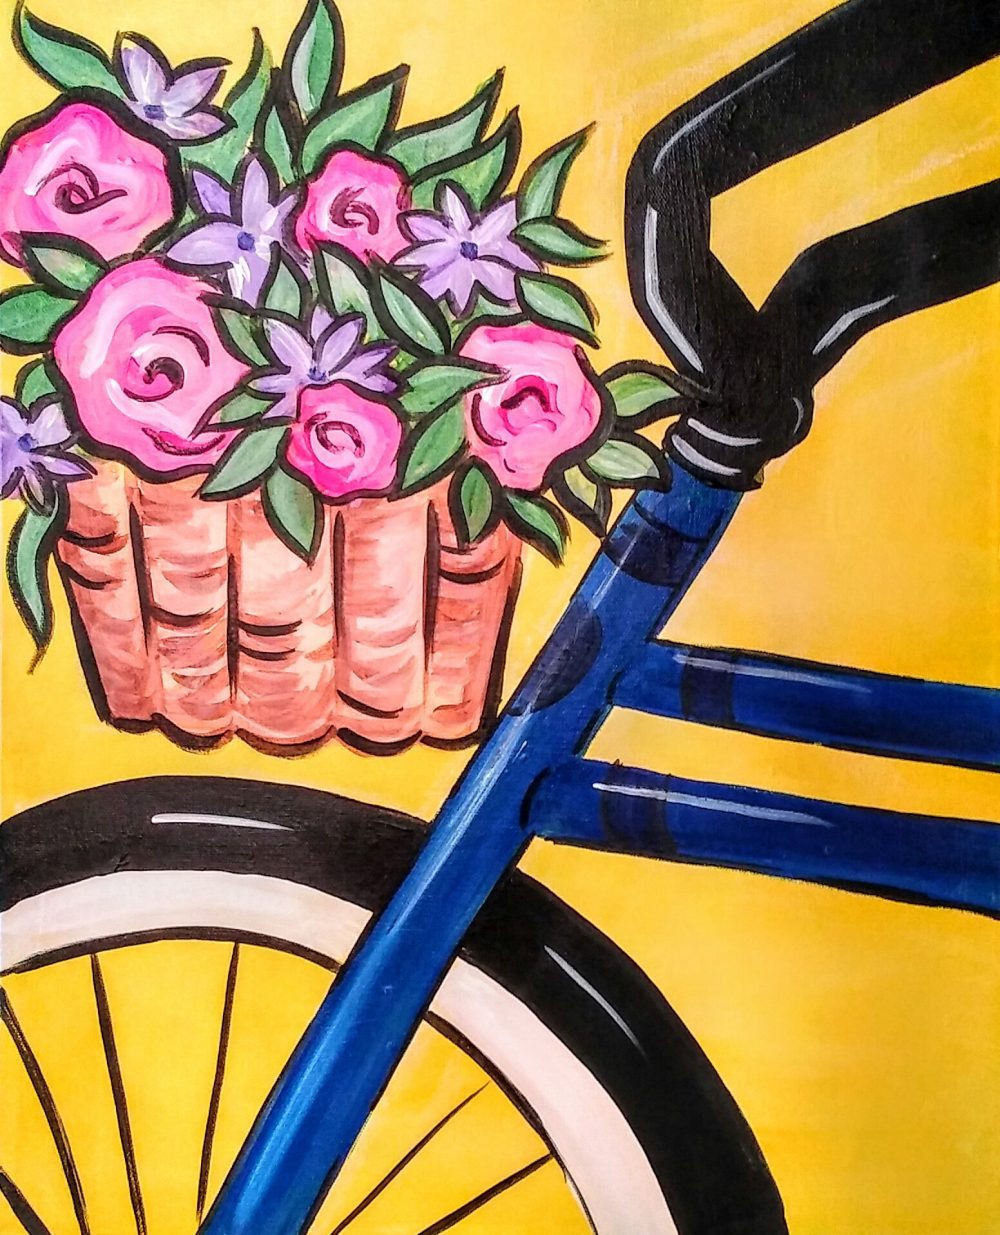 Sweetly Scented Rides August 10th, 6:00-8:00 PM